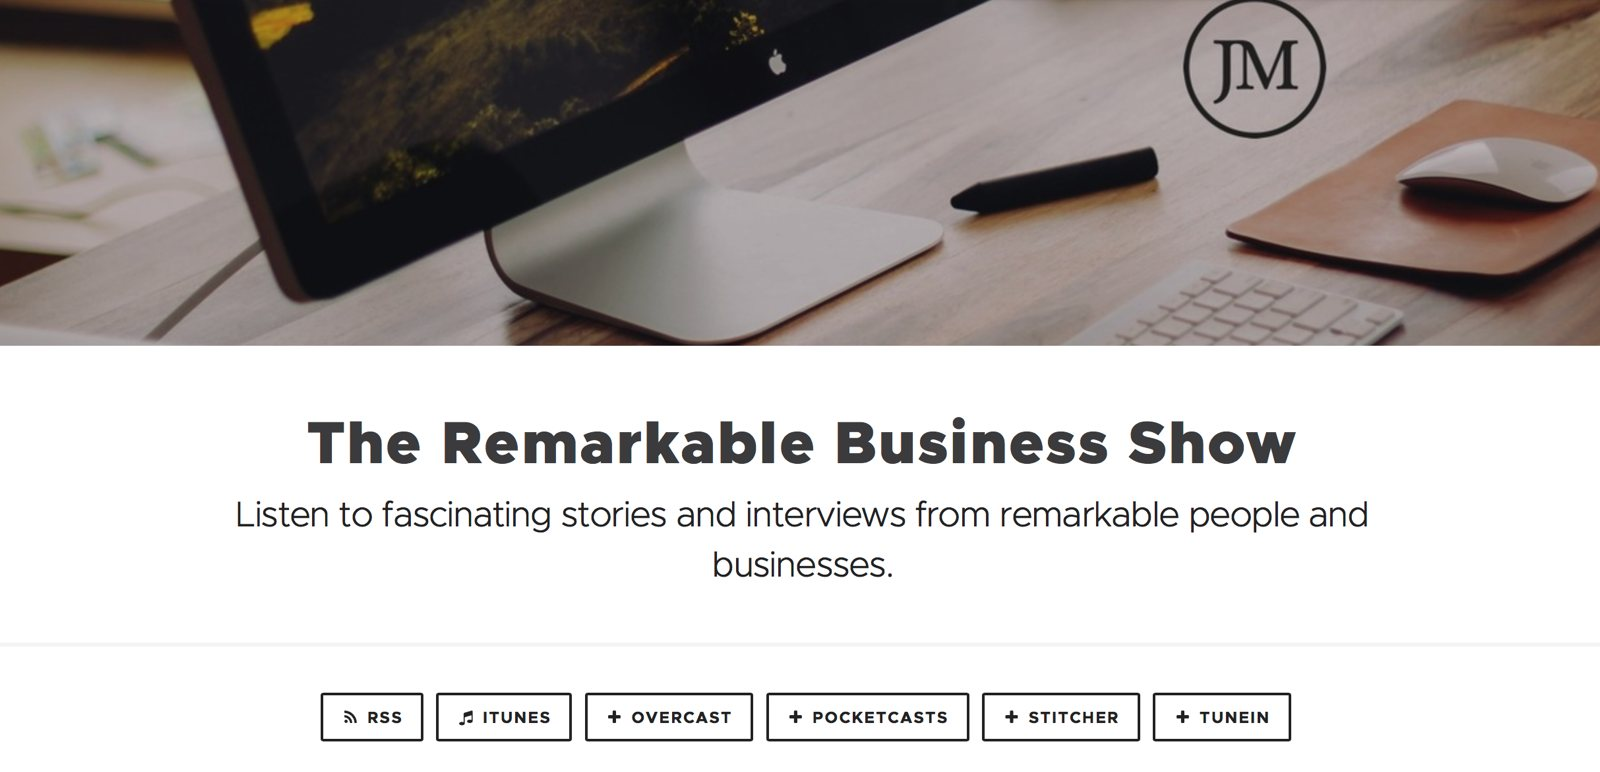 The Remarkable Business Show